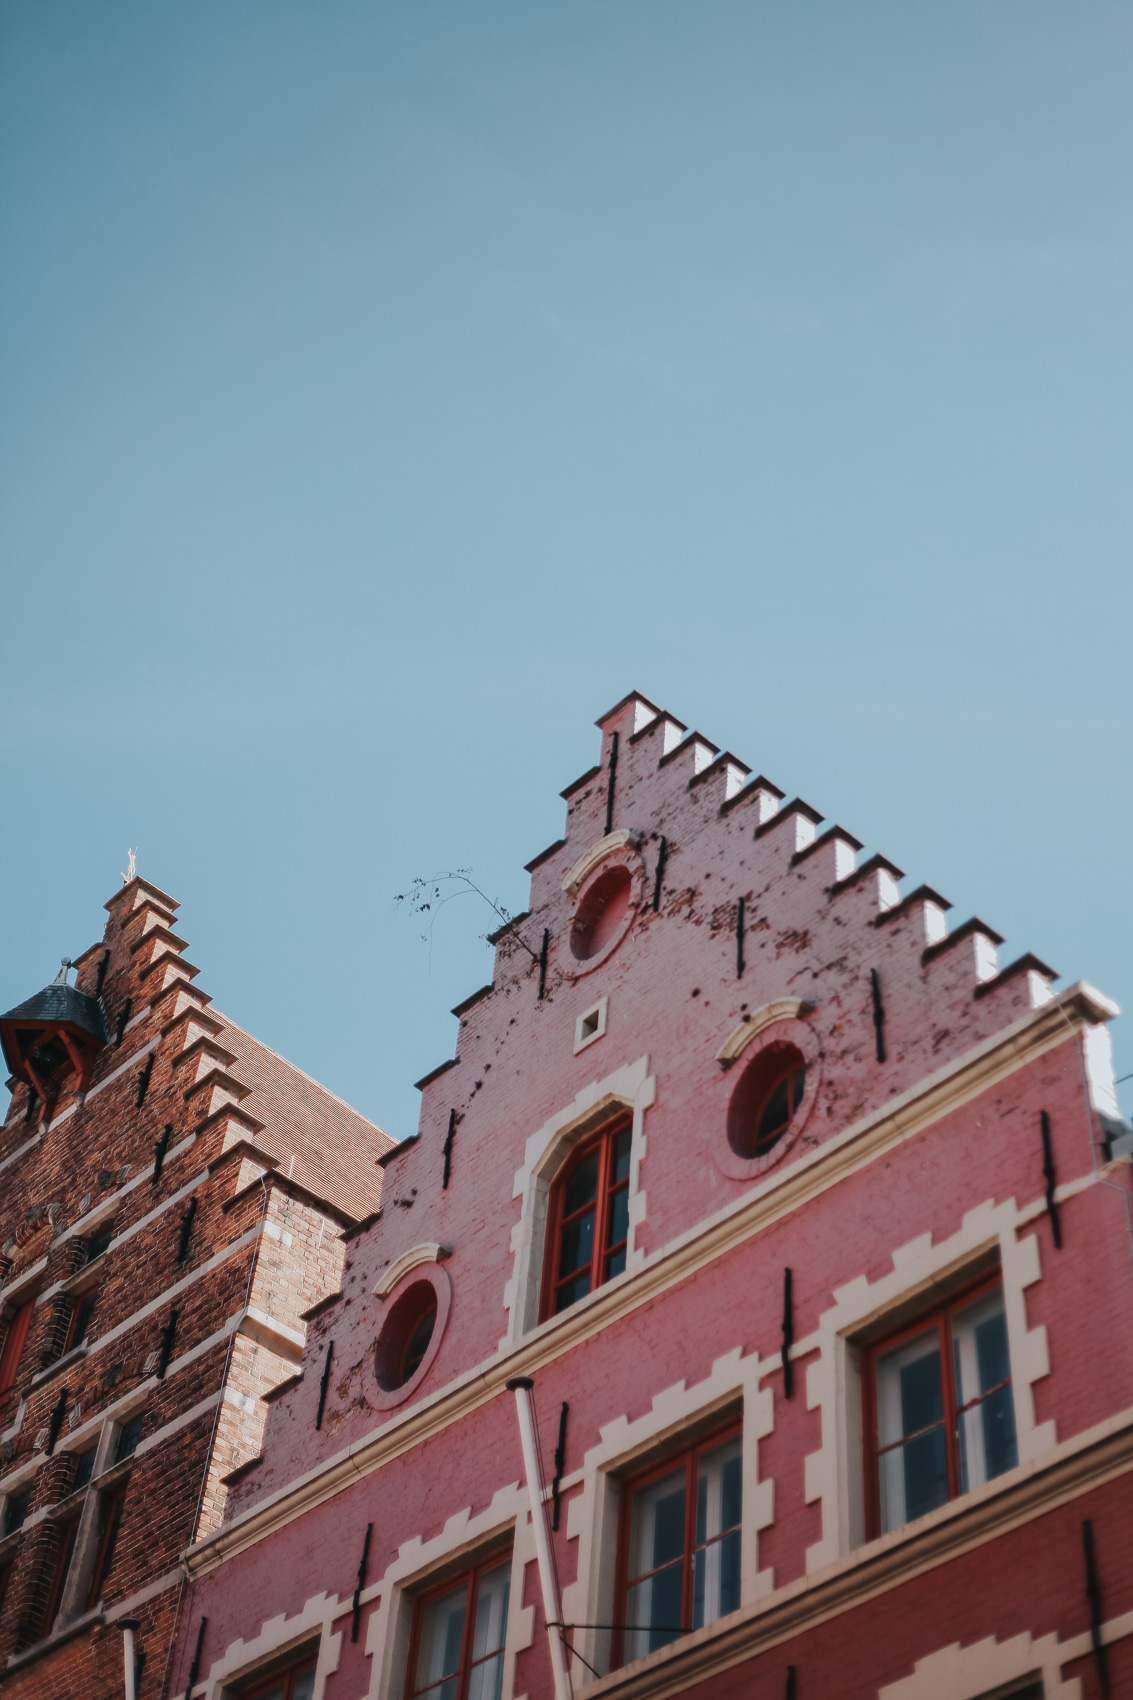 Pink Architecture in Bruges